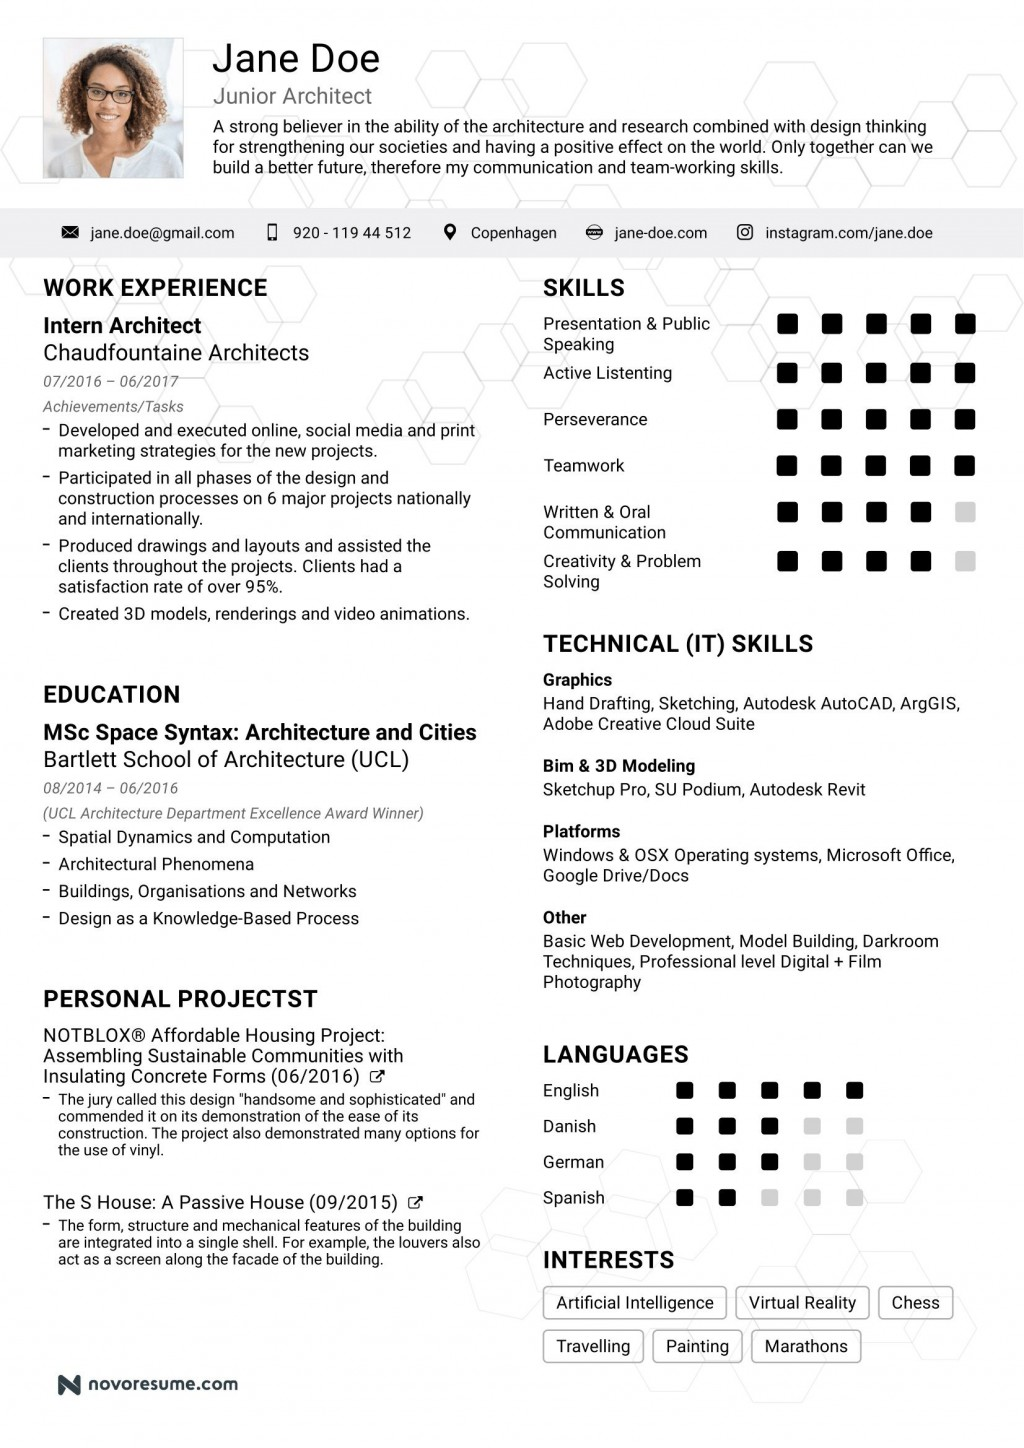 008 Unbelievable Simple Job Resume Template Photo  Templates Example DownloadLarge